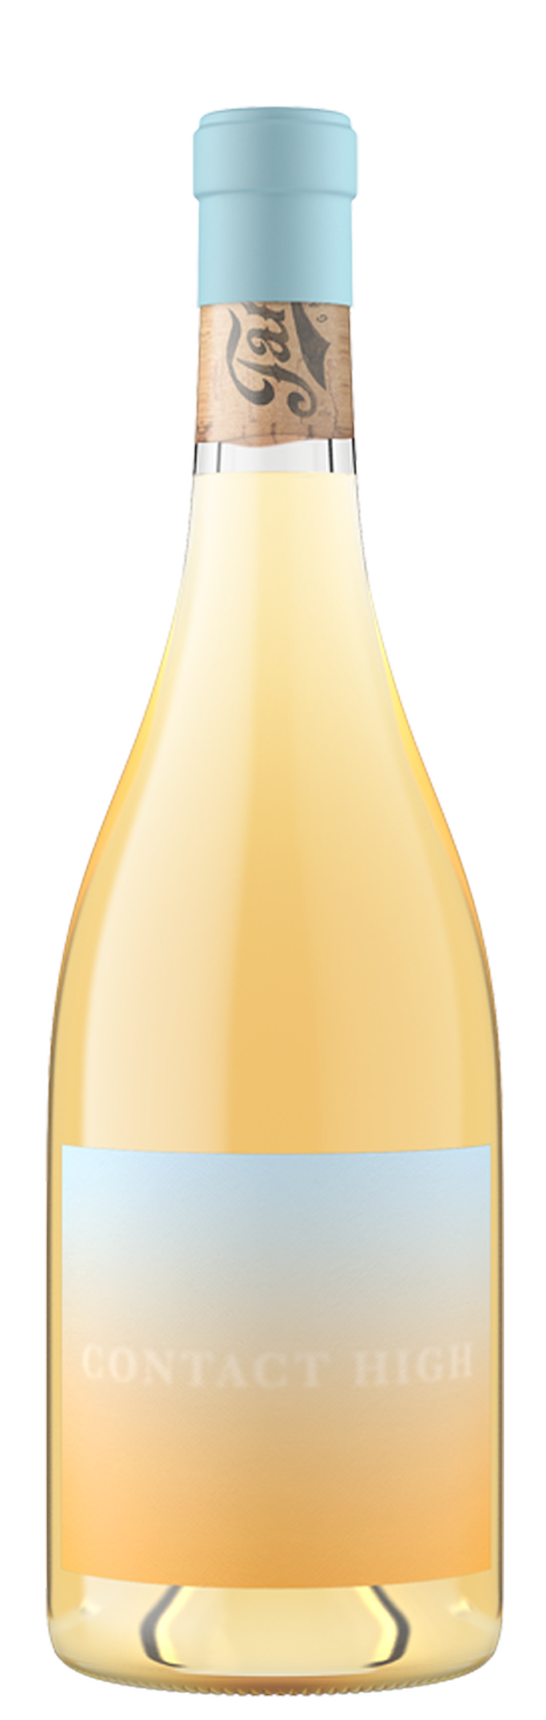 2020 Contact High, Skin-Fermented White Wine, Sierra Foothills